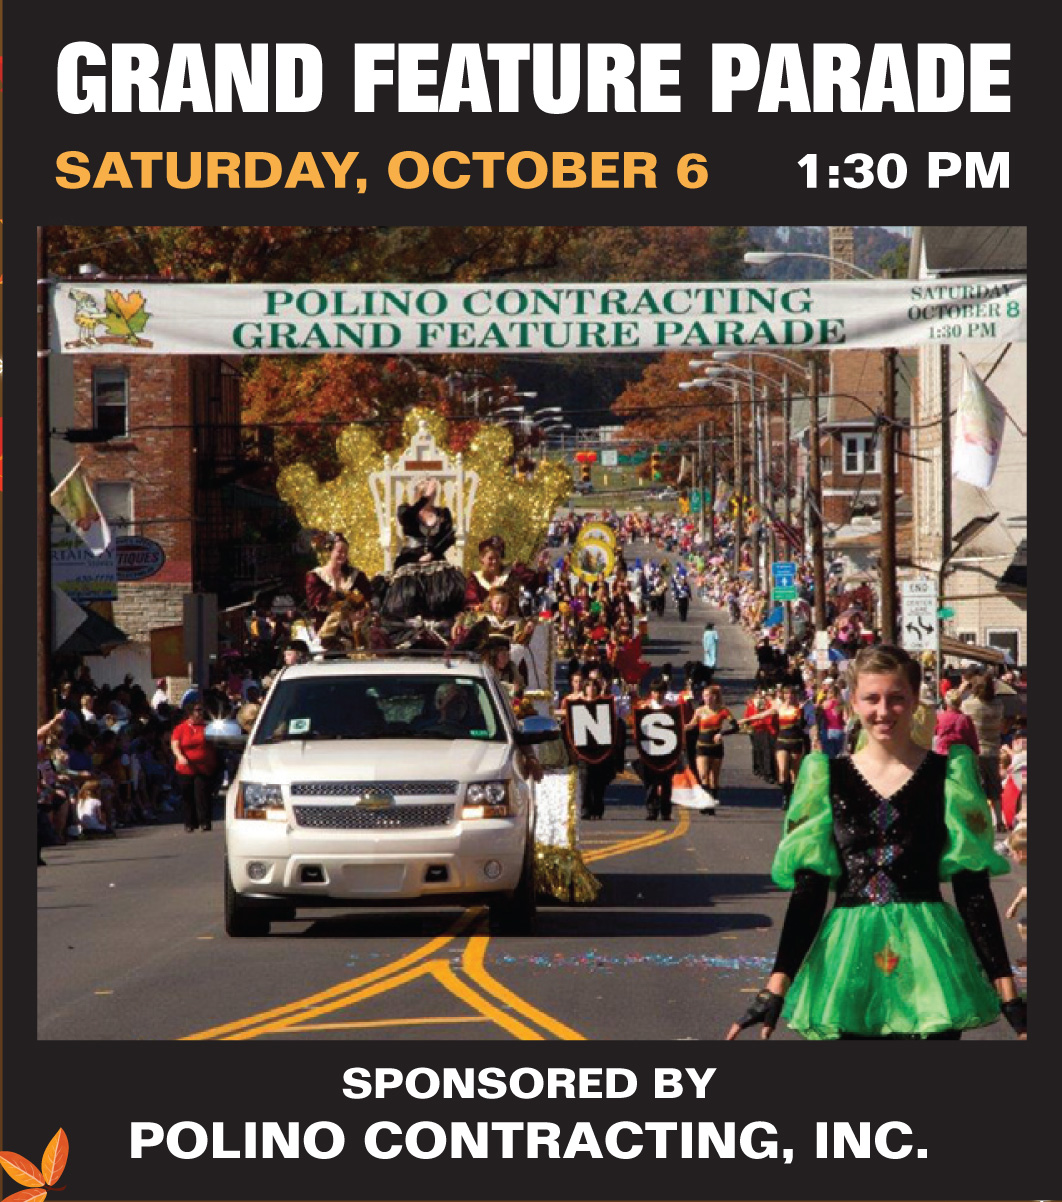 Grand Feature Parade